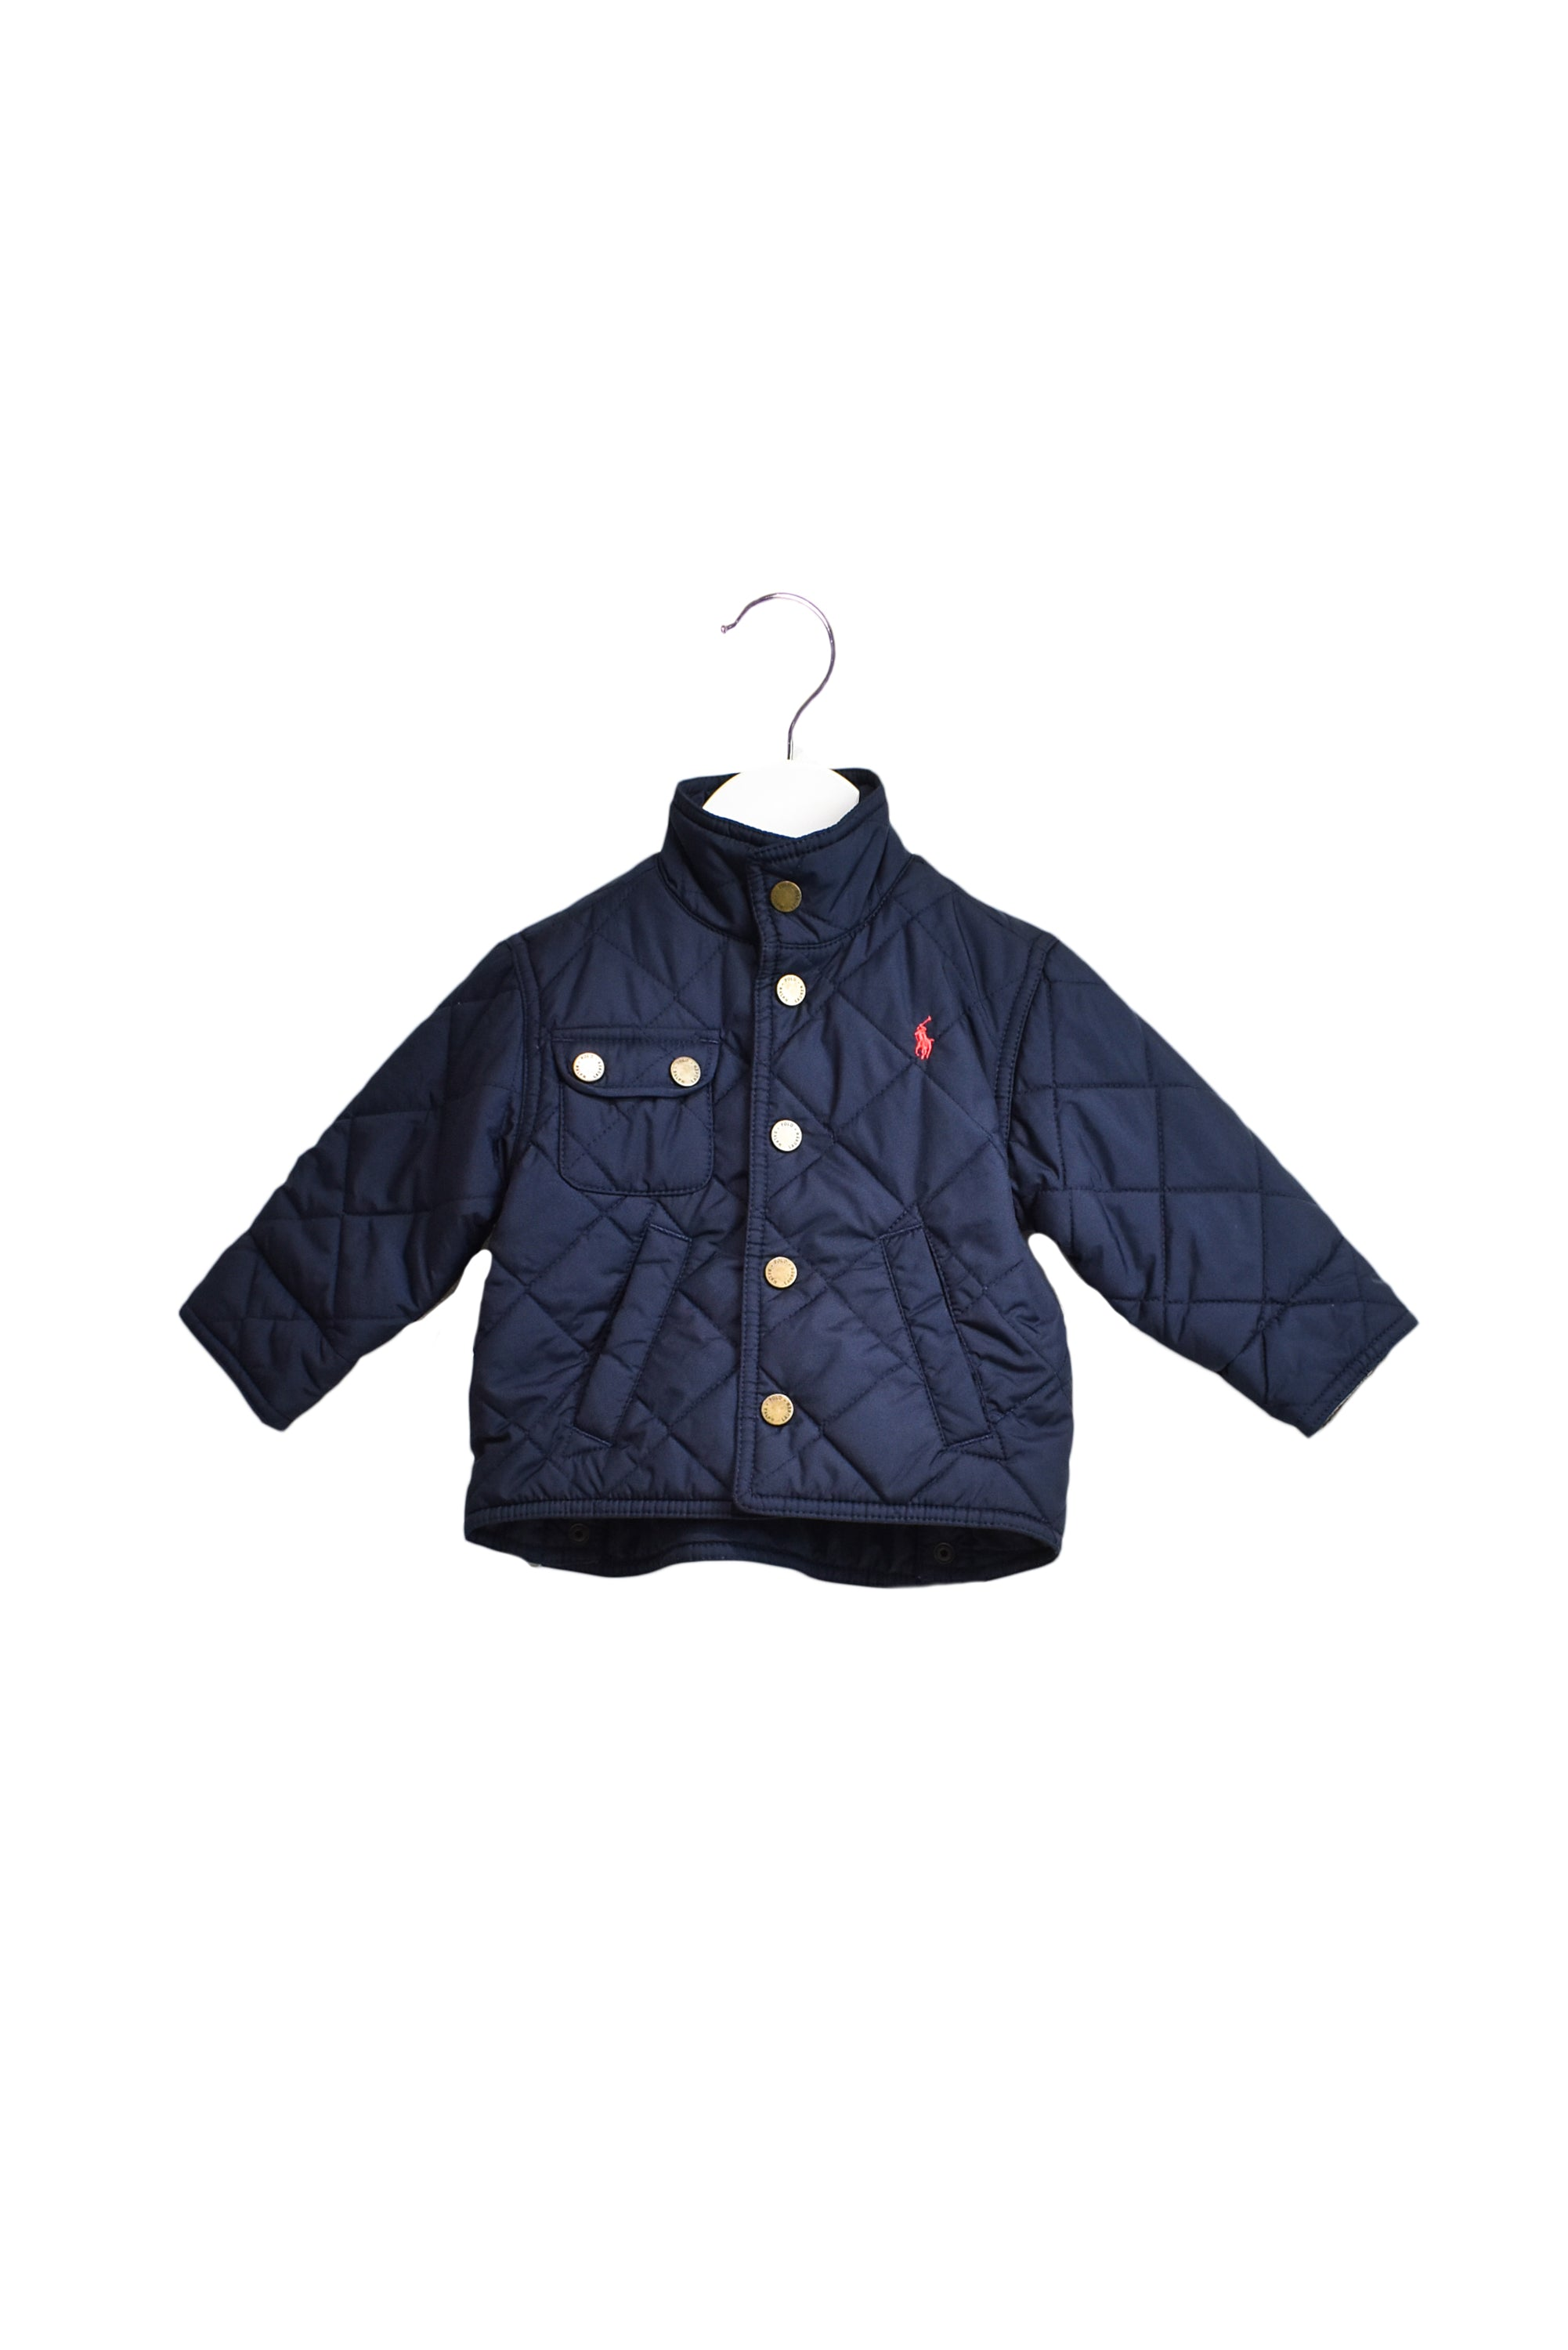 613da94ae 10018756 Polo Ralph Lauren Baby~Quilted Jacket 12M at Retykle